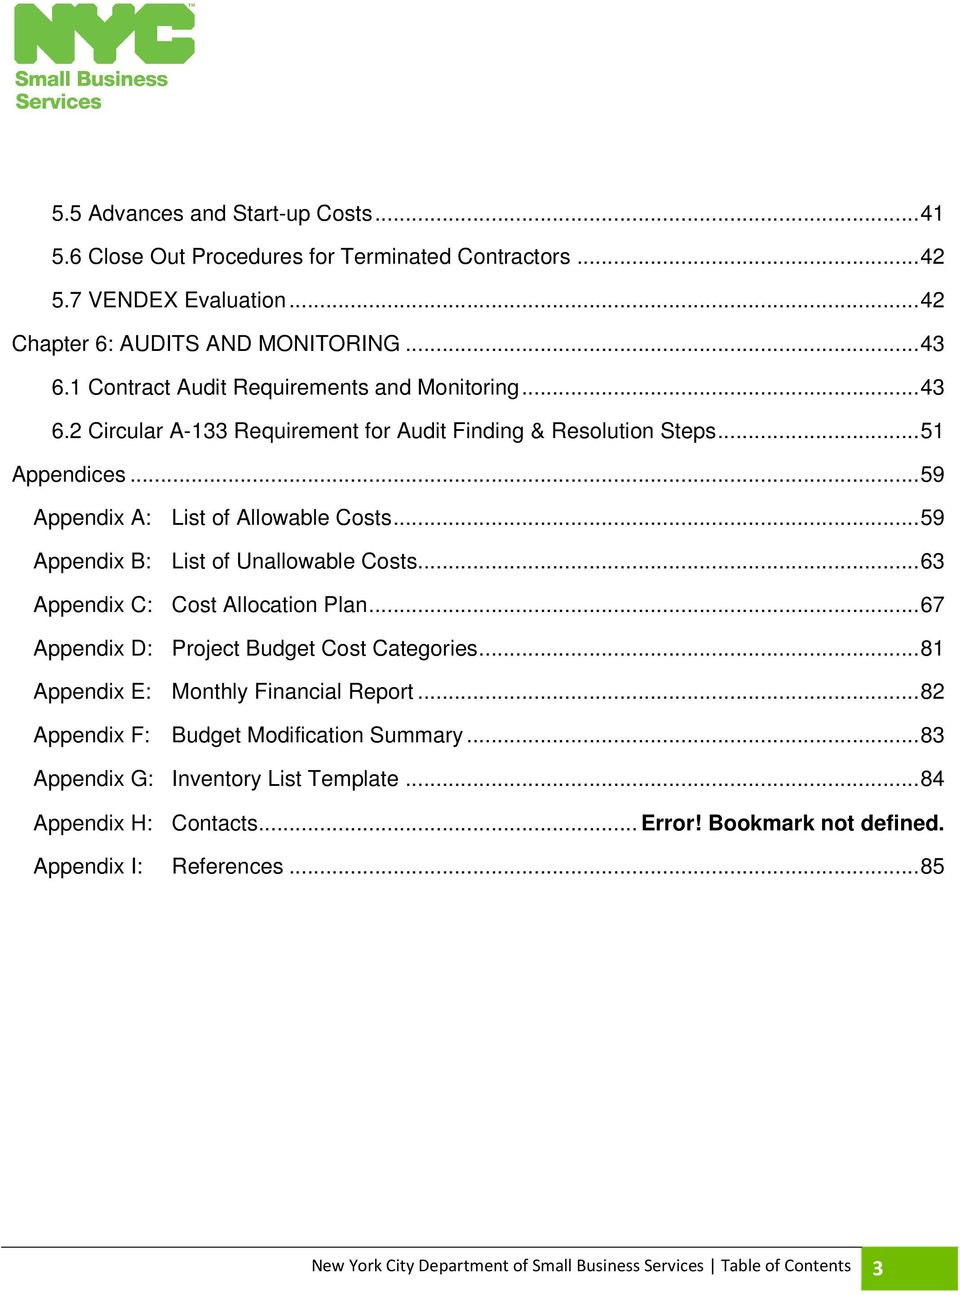 59 Appendix B List Of Unallowable Costs 63 C